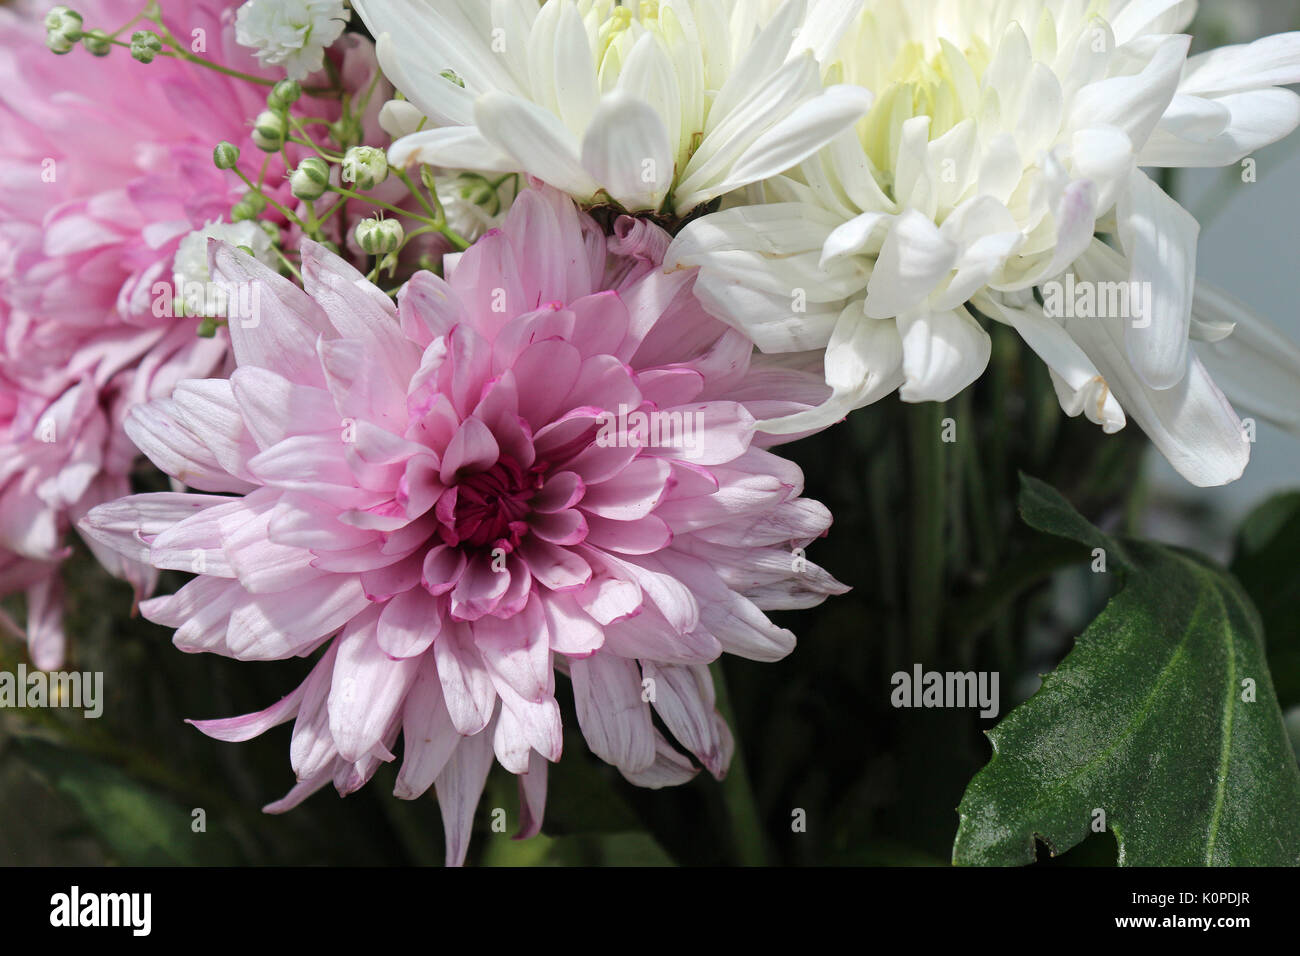 A Floral Arrangement of Pink and White Flowers Stock Photo